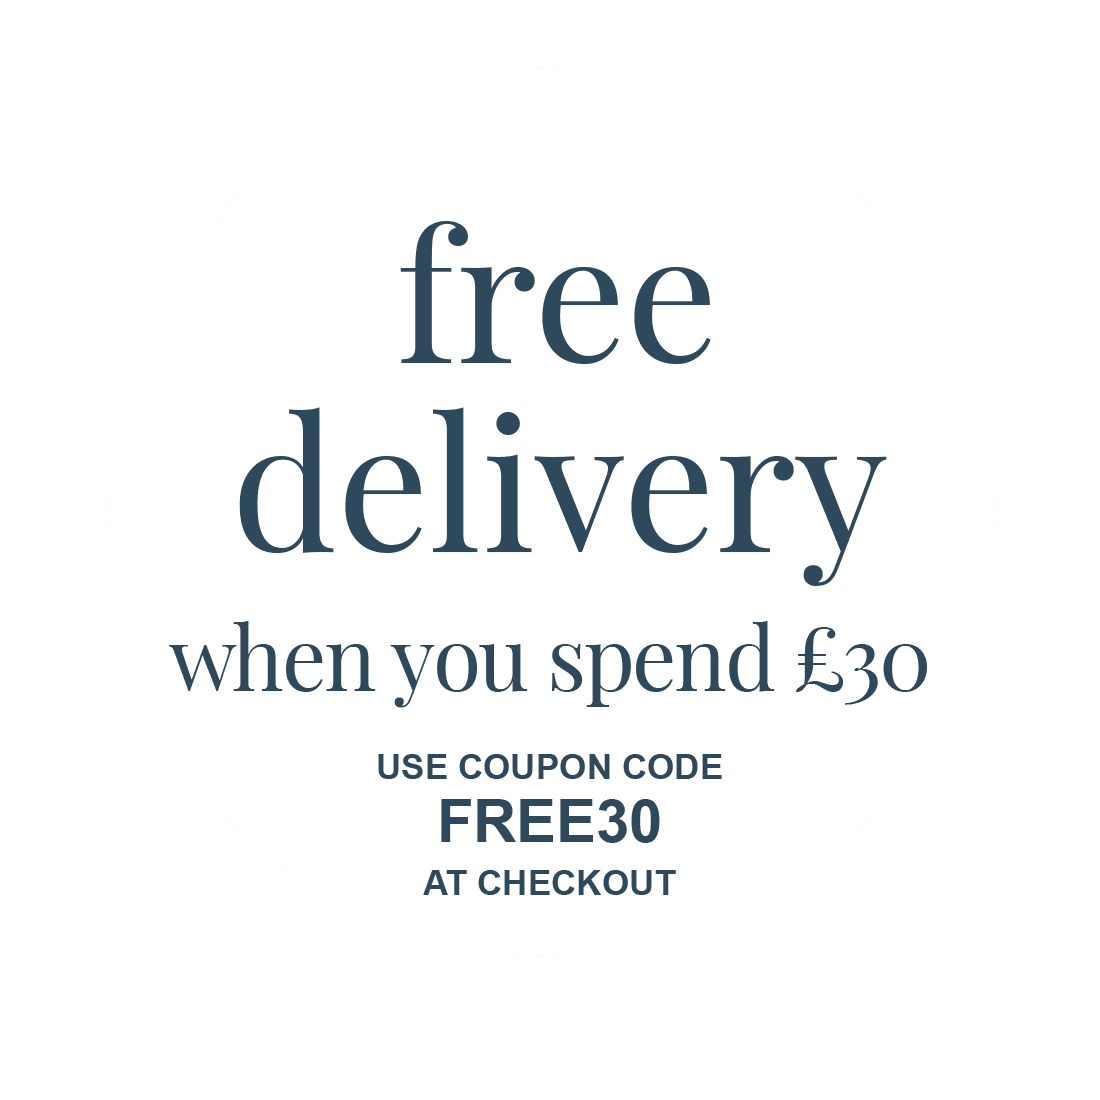 Free delivery when you spend £30 - Use coupon code FREE30 at checkout